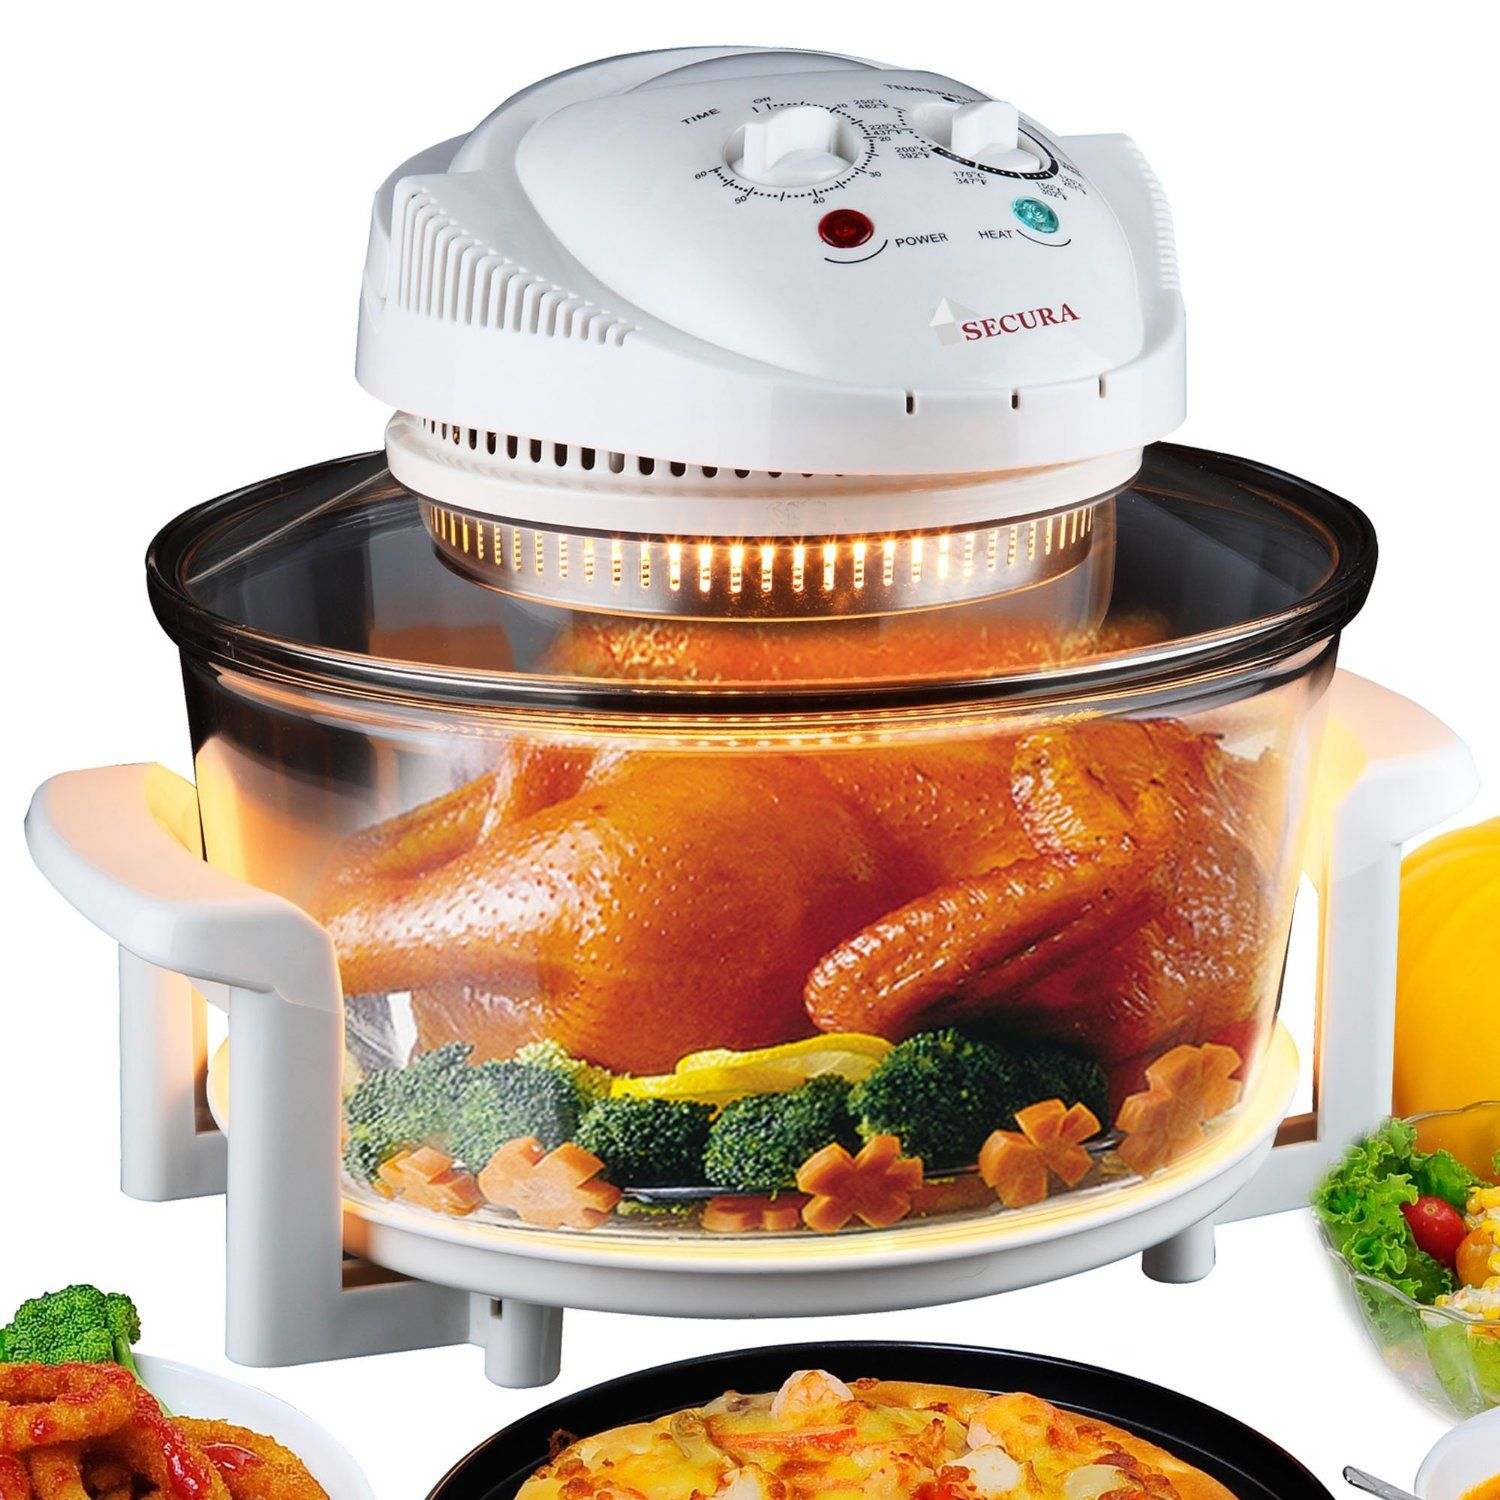 Secura turbo oven uses infrared heating and convection fan